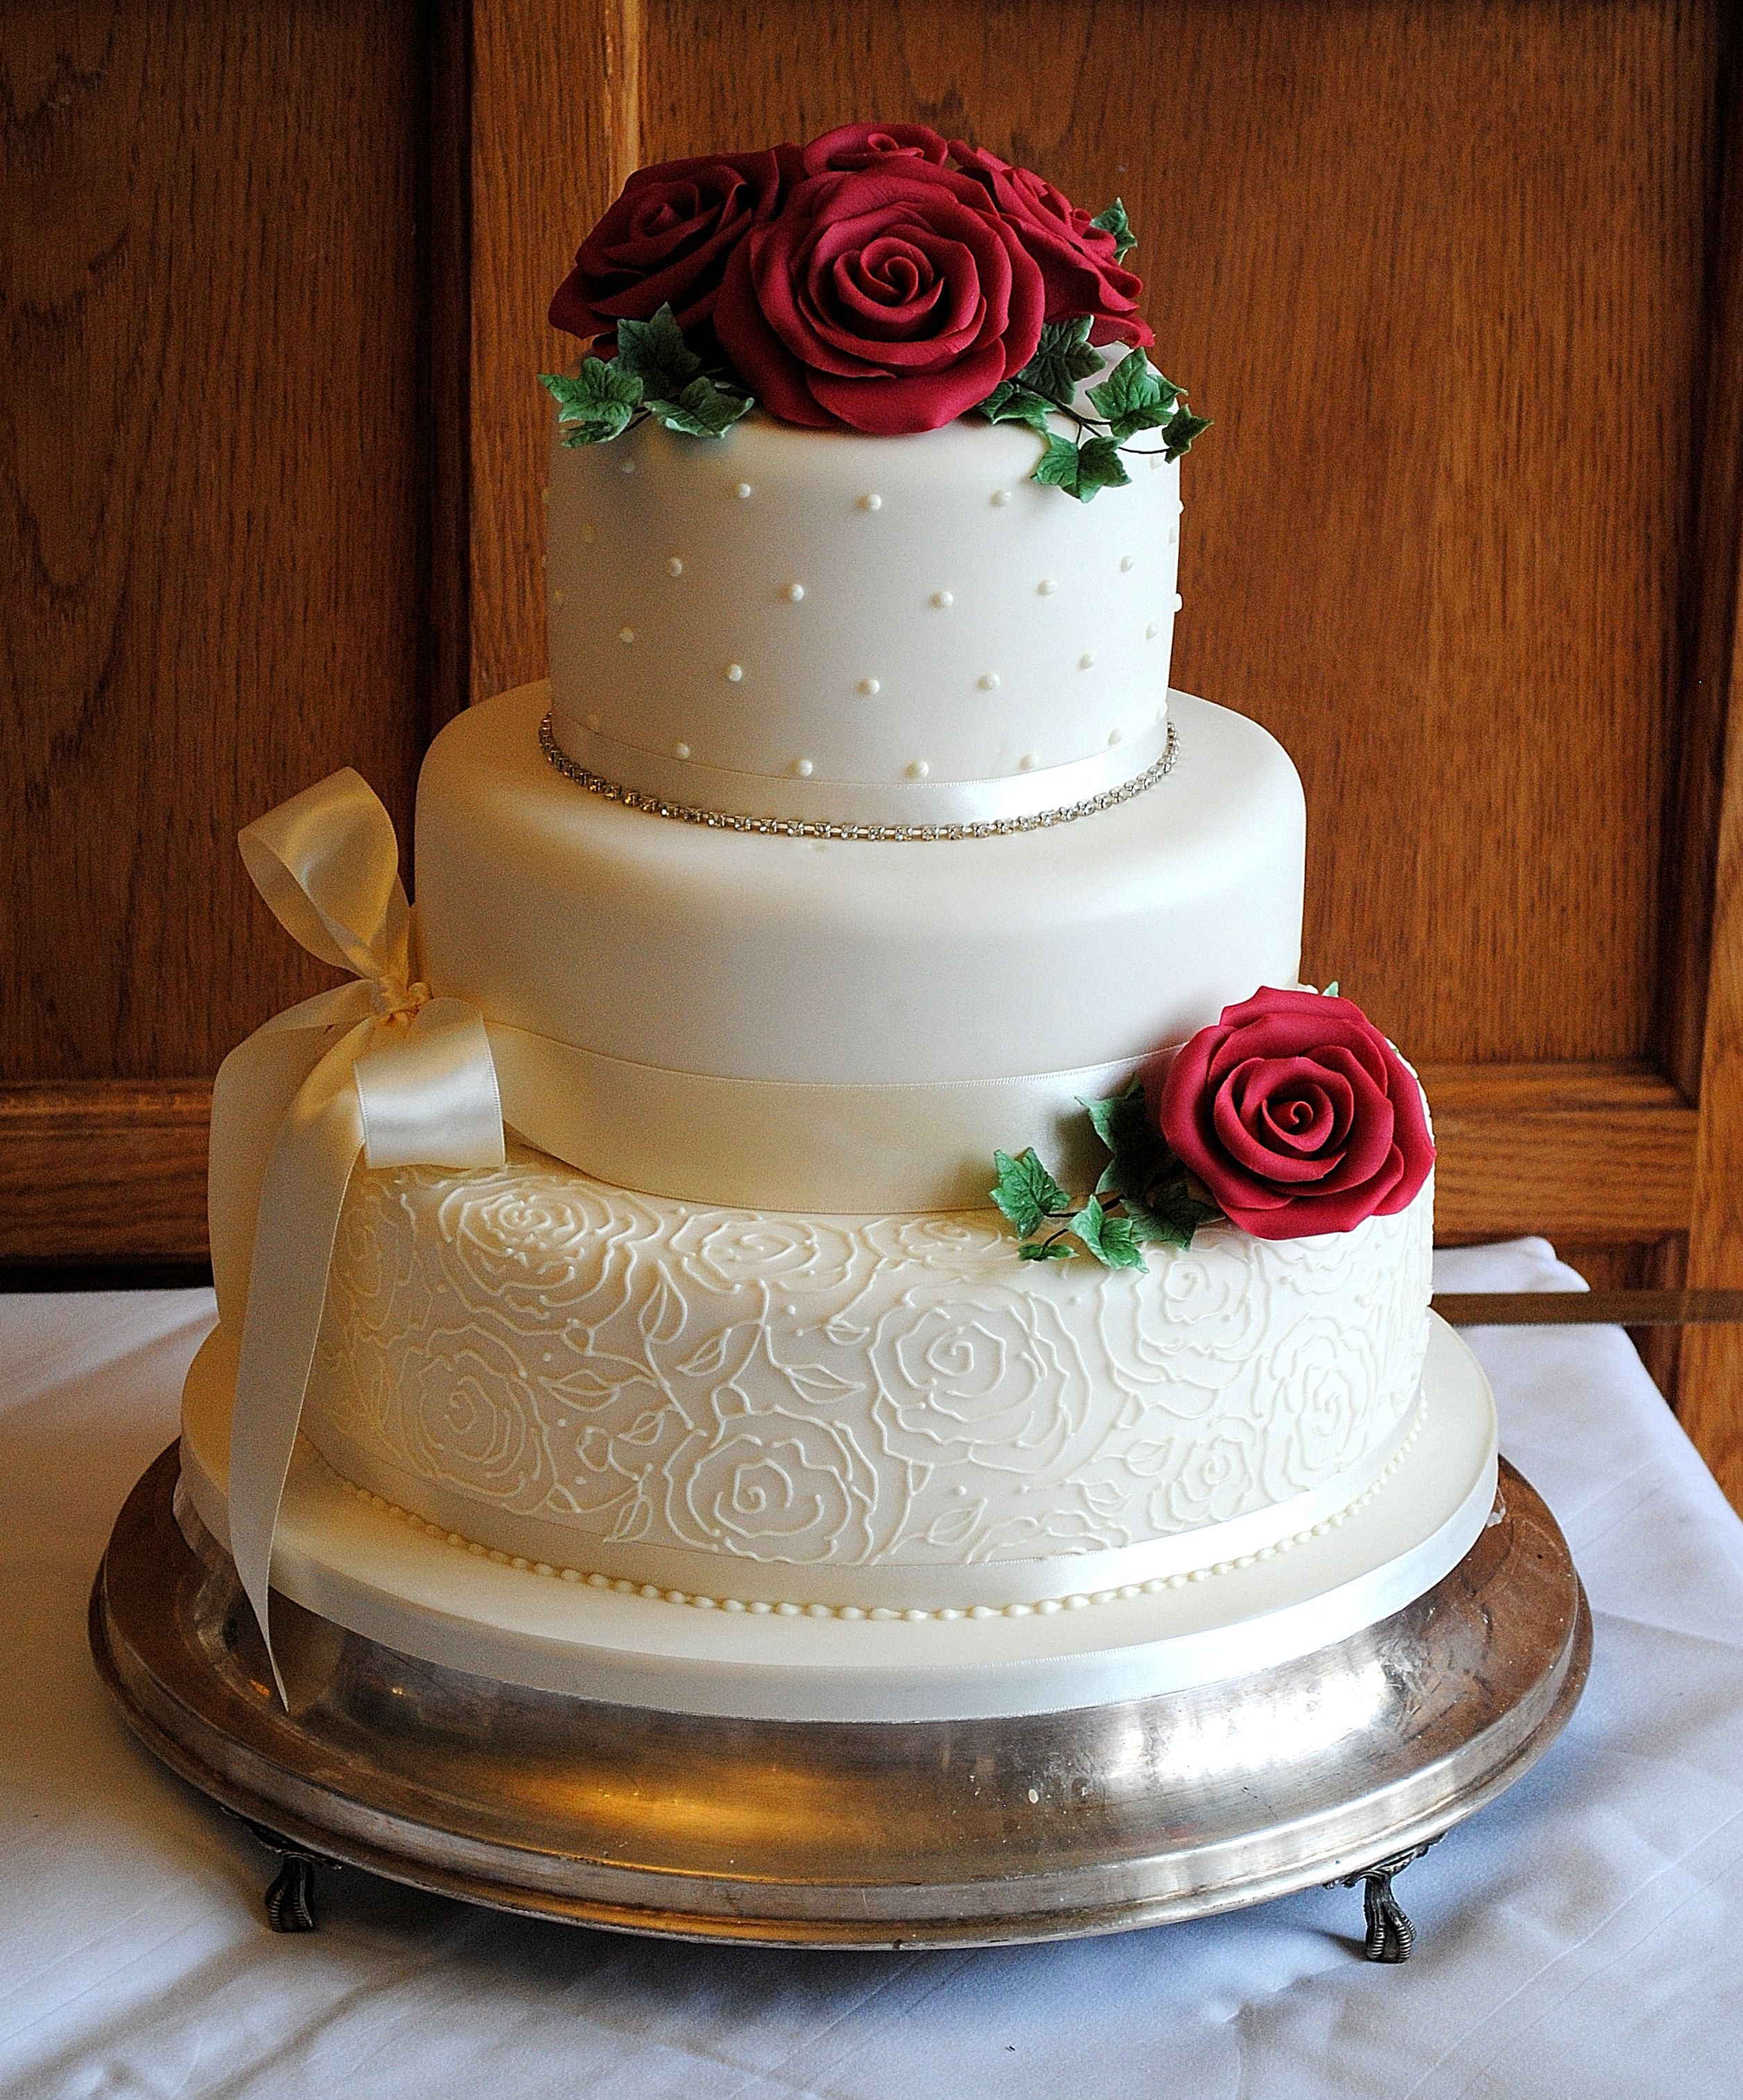 beautiful wedding cakes with roses 3 tier festive wedding cake with roses and by www 11232